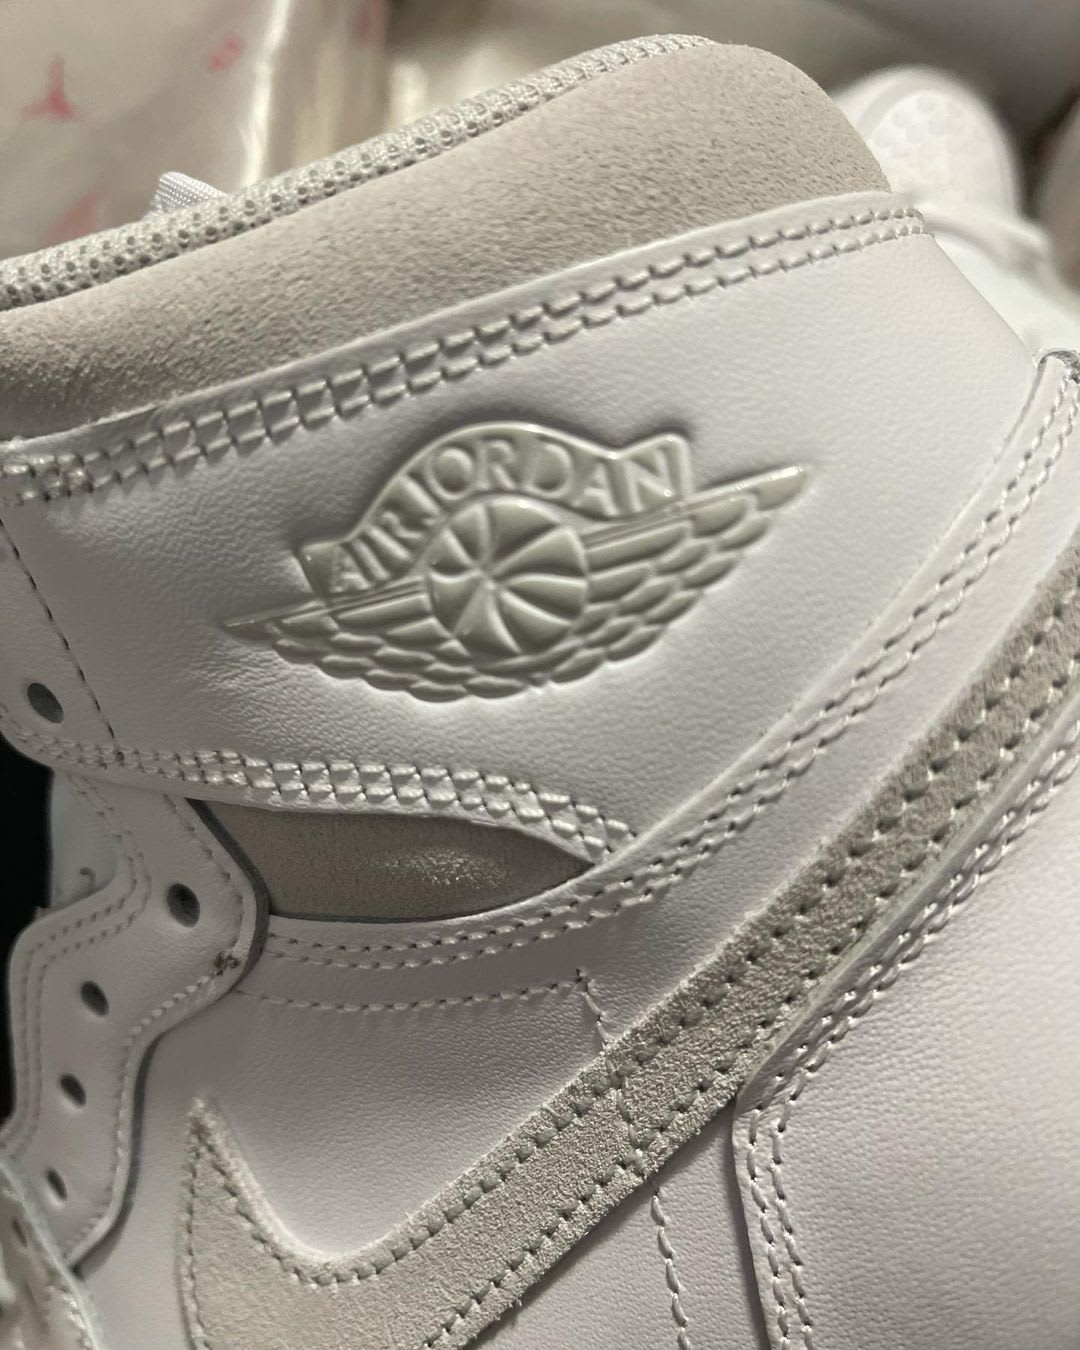 Air Jordan 1 Retro High OG 'Neutral Grey' BQ4422-100 Ankle